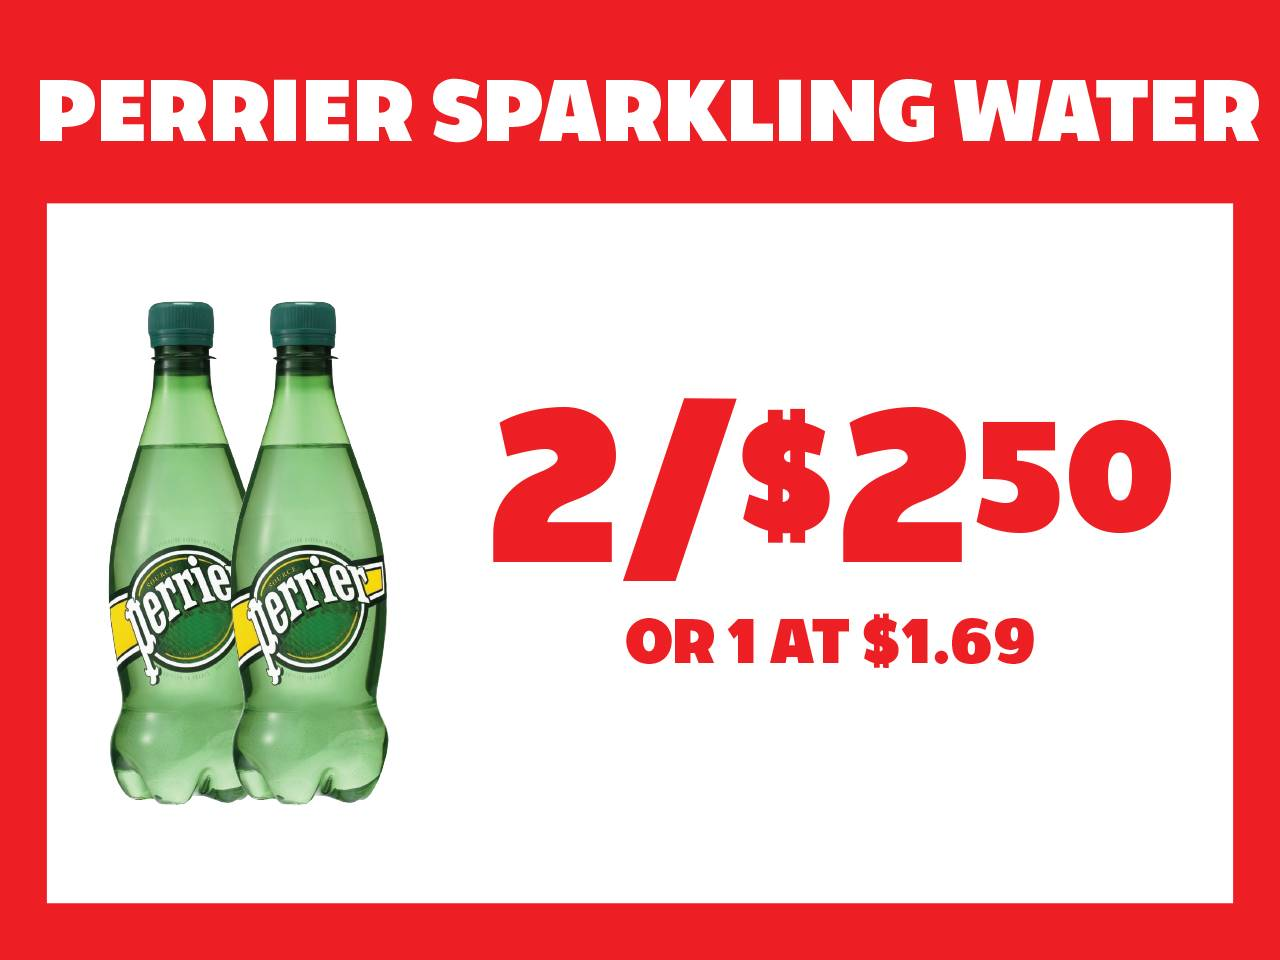 Perrier Sparkling Water 2 for $2.50 or 1 at $1.69